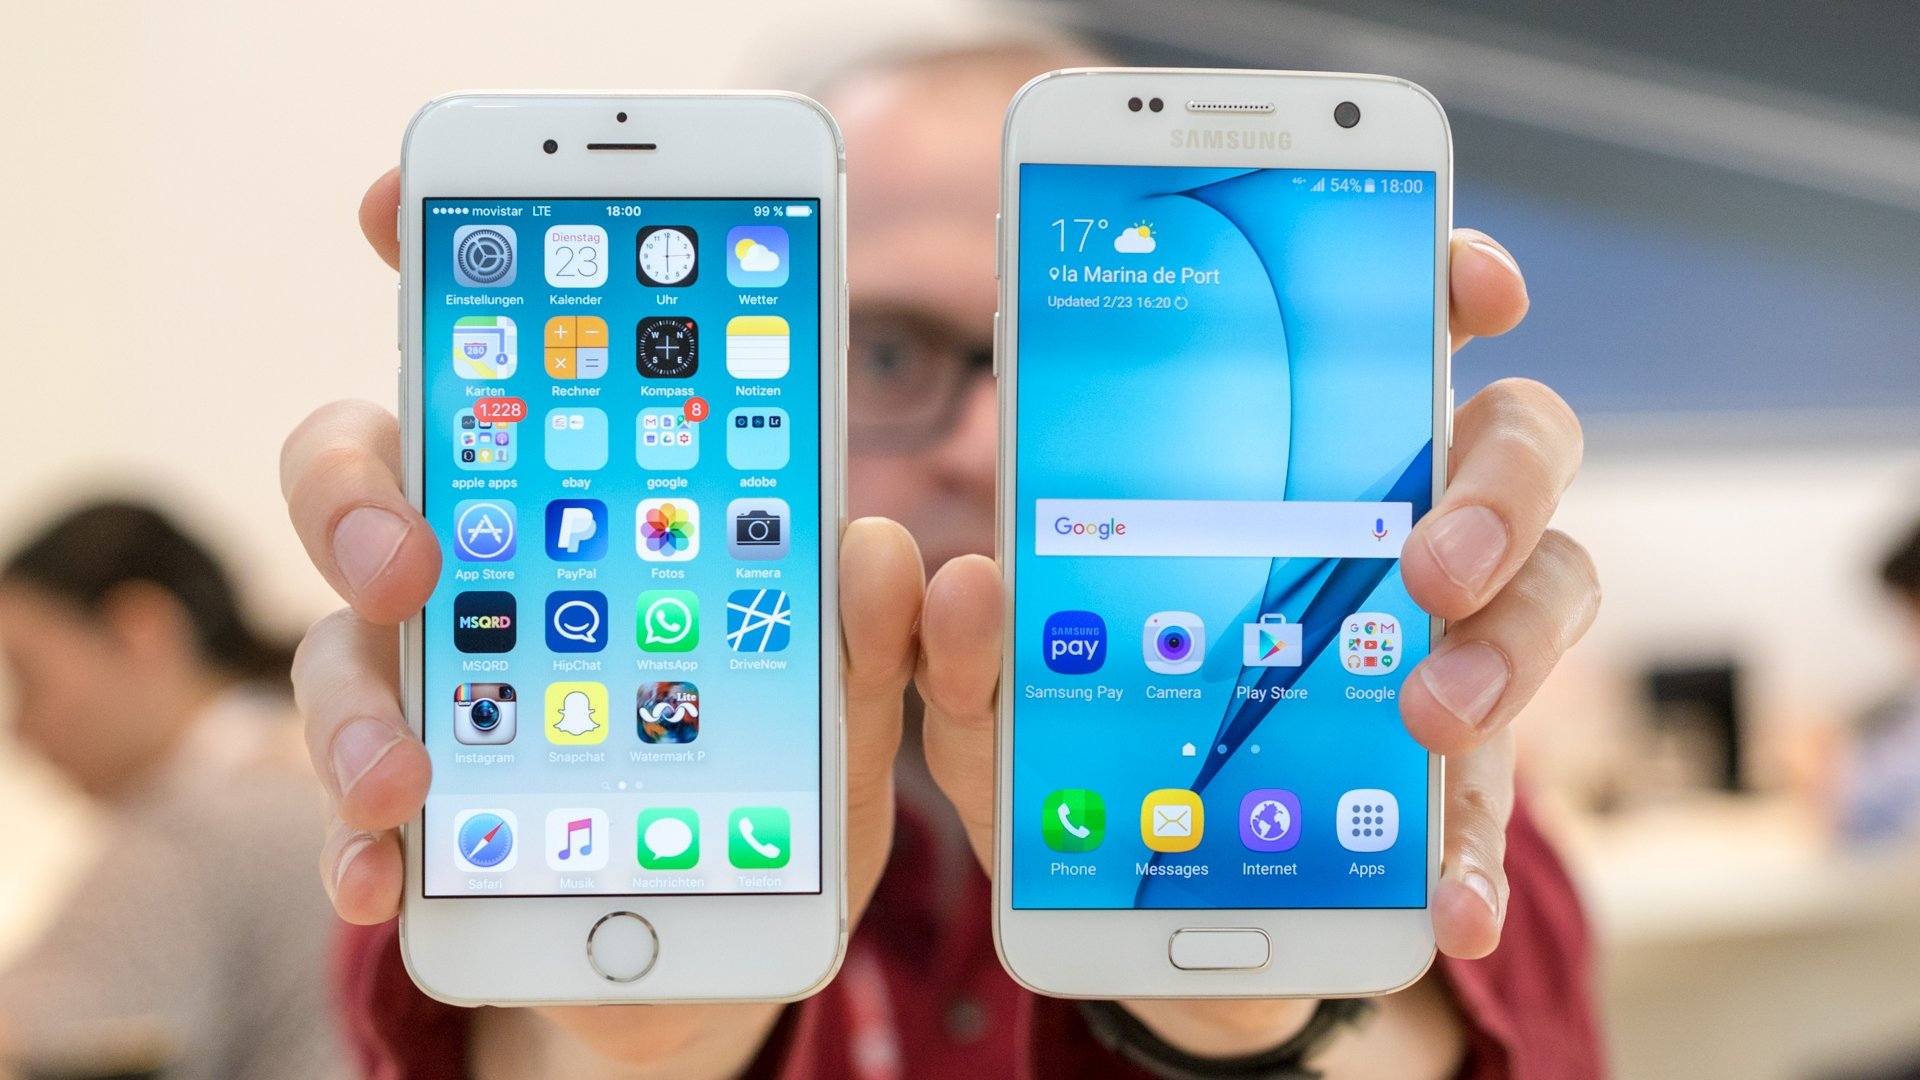 mean s7 edge vs iphone 6 plus site-specific